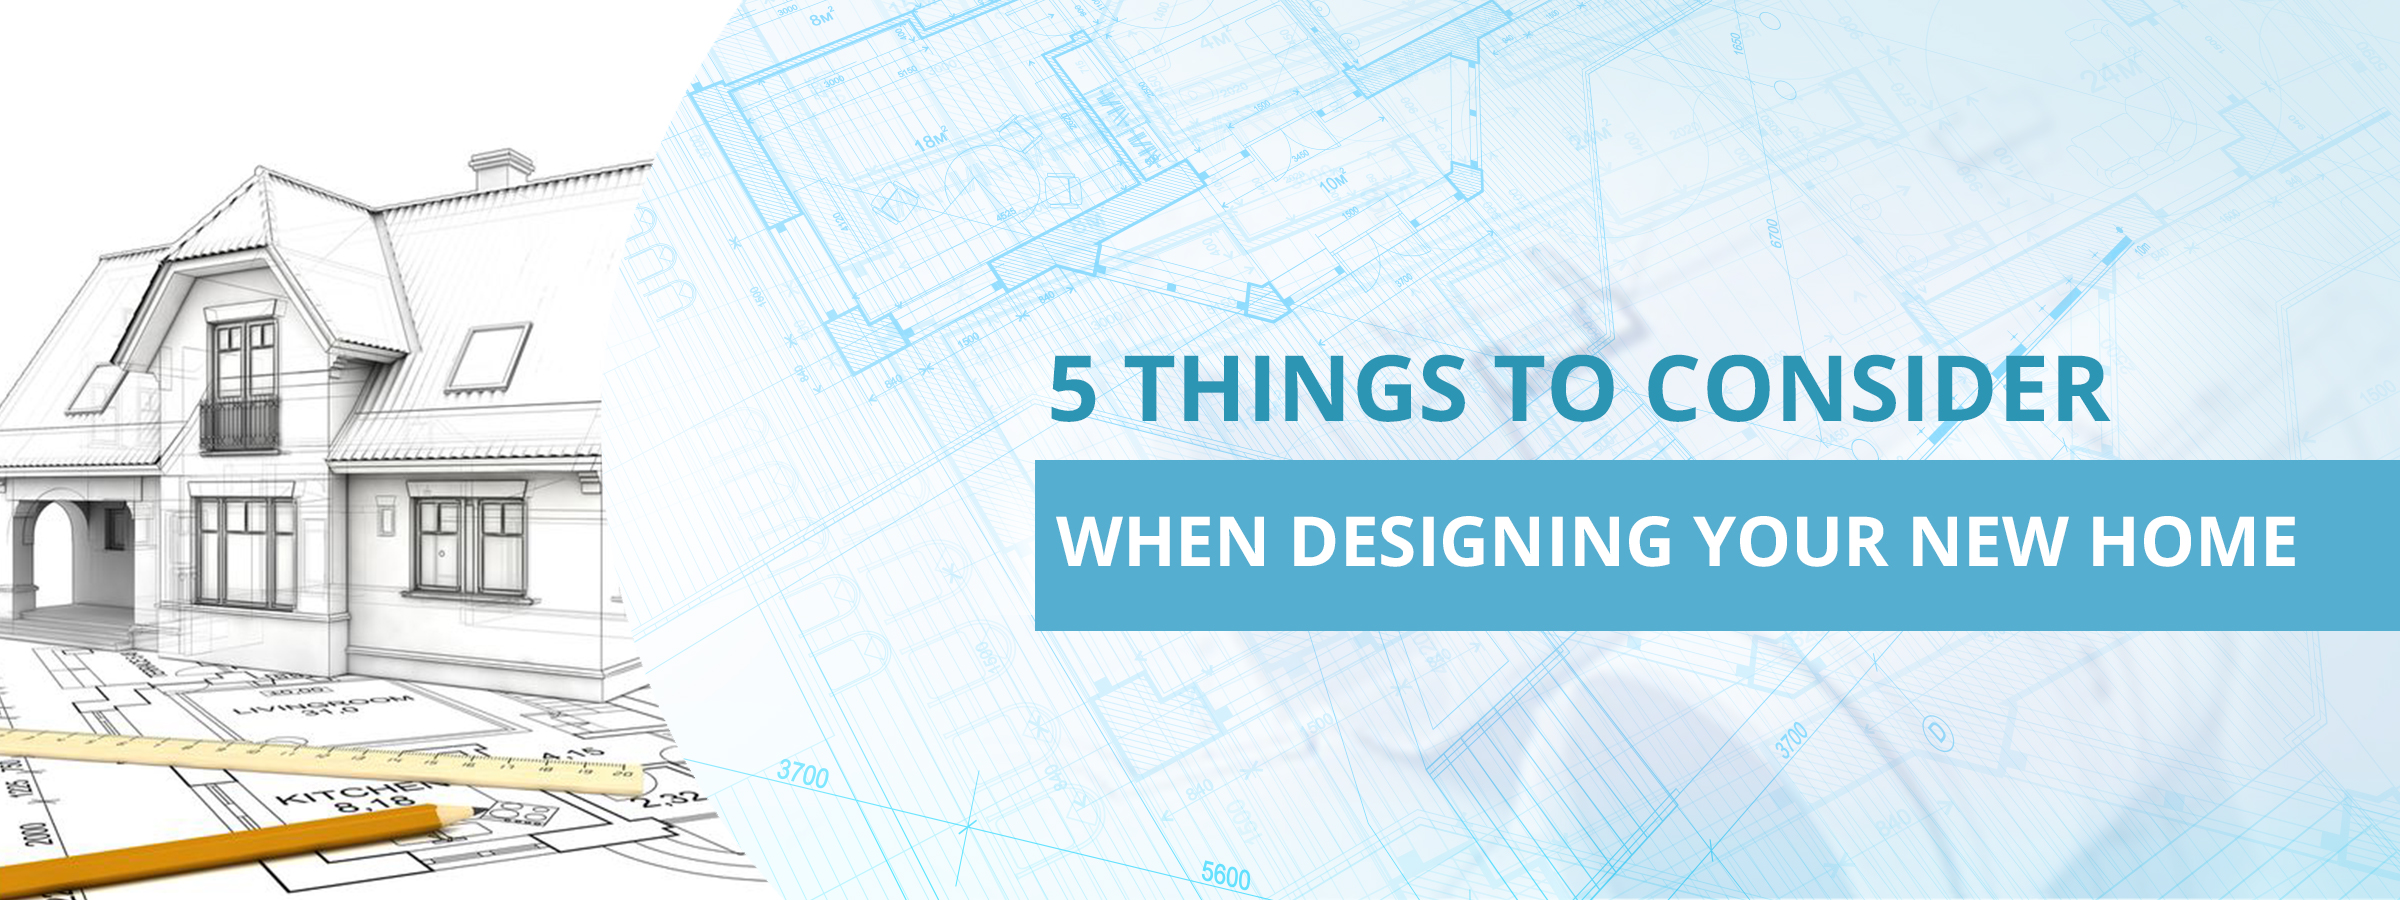 5 things to consider when designing your new home